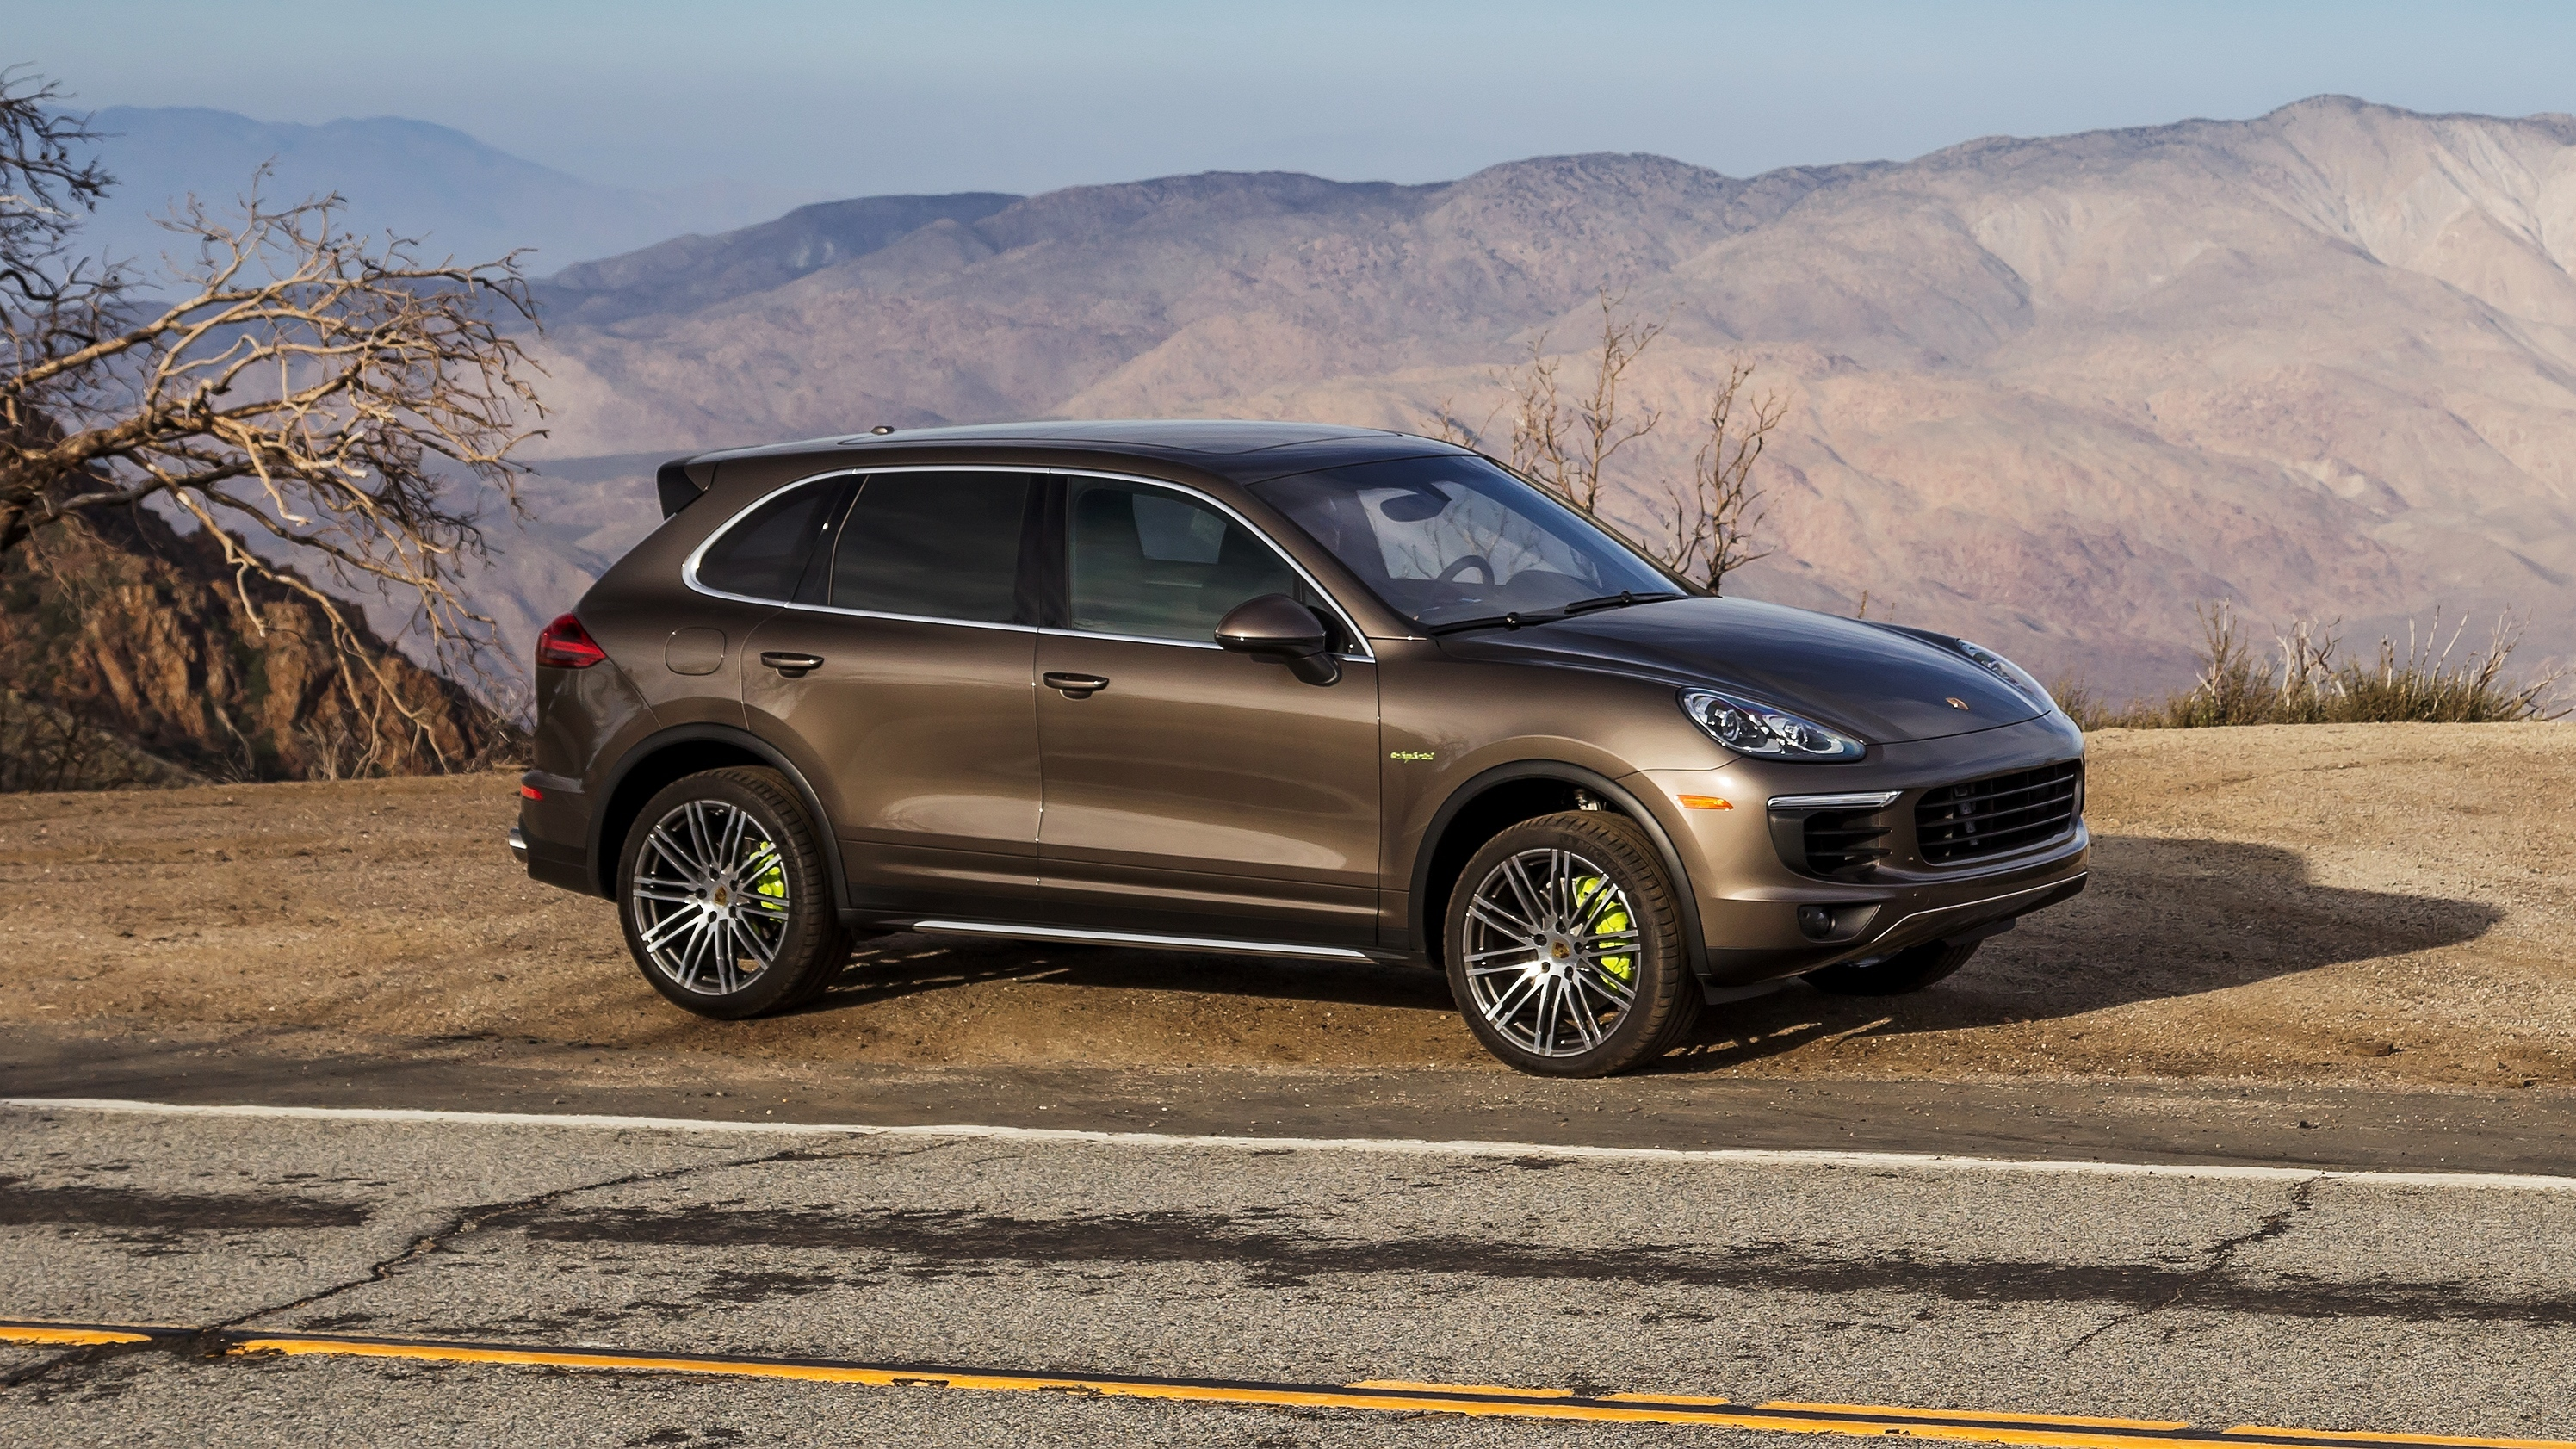 89994 Screensavers and Wallpapers Porsche for phone. Download Porsche, Cars, 2014, Hybrid, Cayenne, Us-Spec, 958 pictures for free